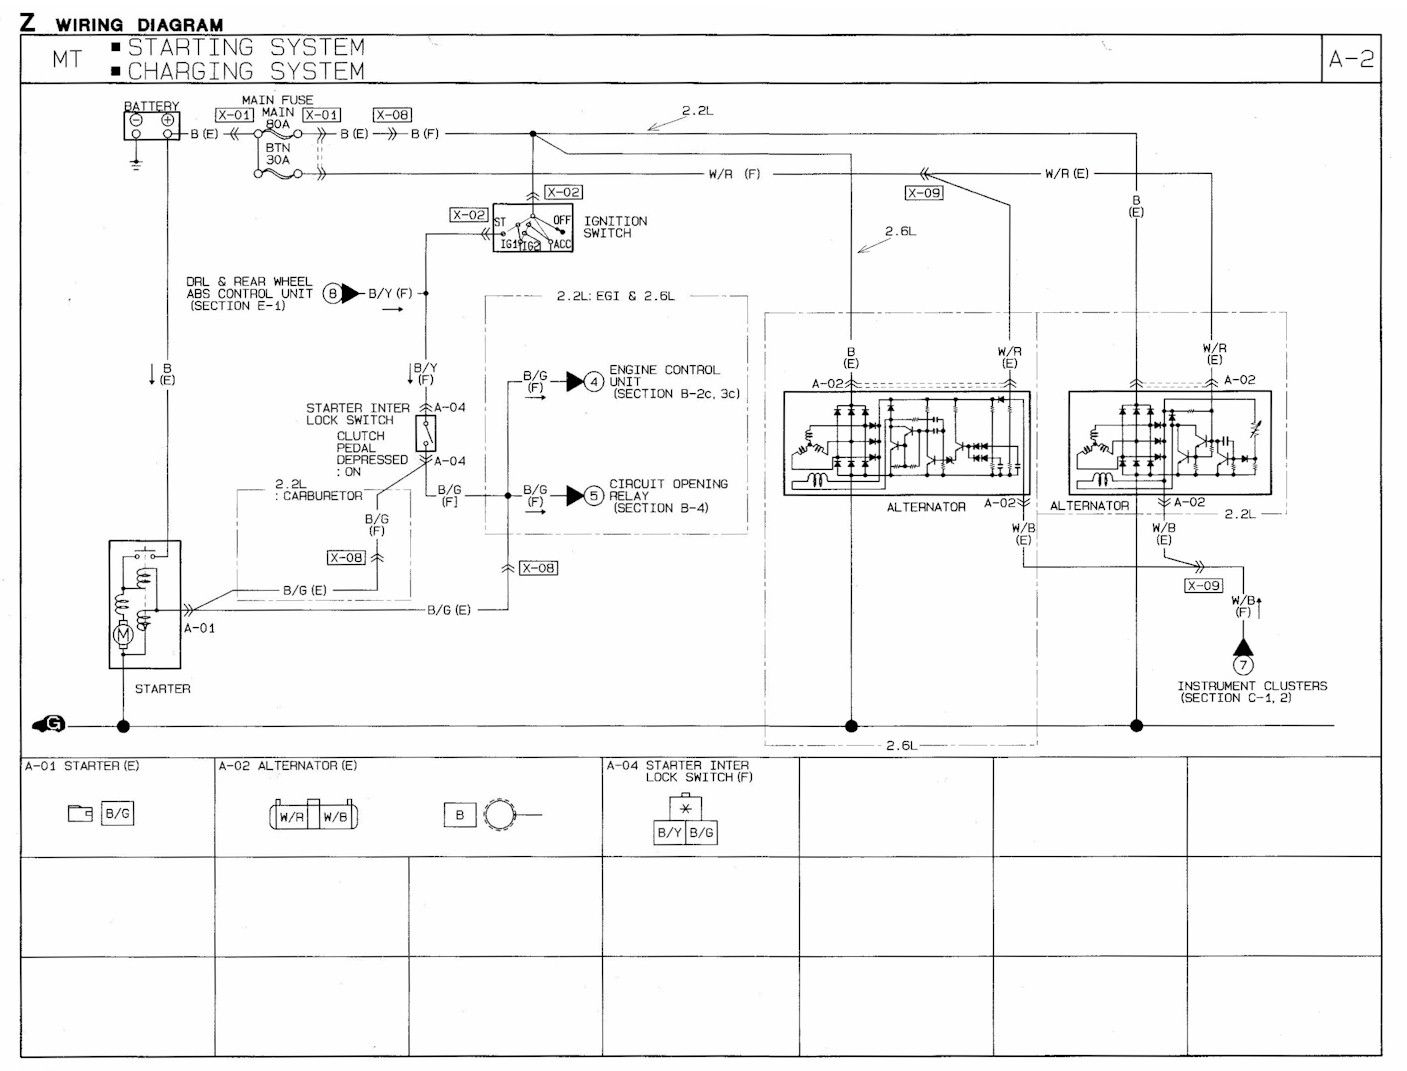 Mazda Alternator Wiring Diagram Schematics 626 Gf 1991 B2600i Starter Manual Motorcraft